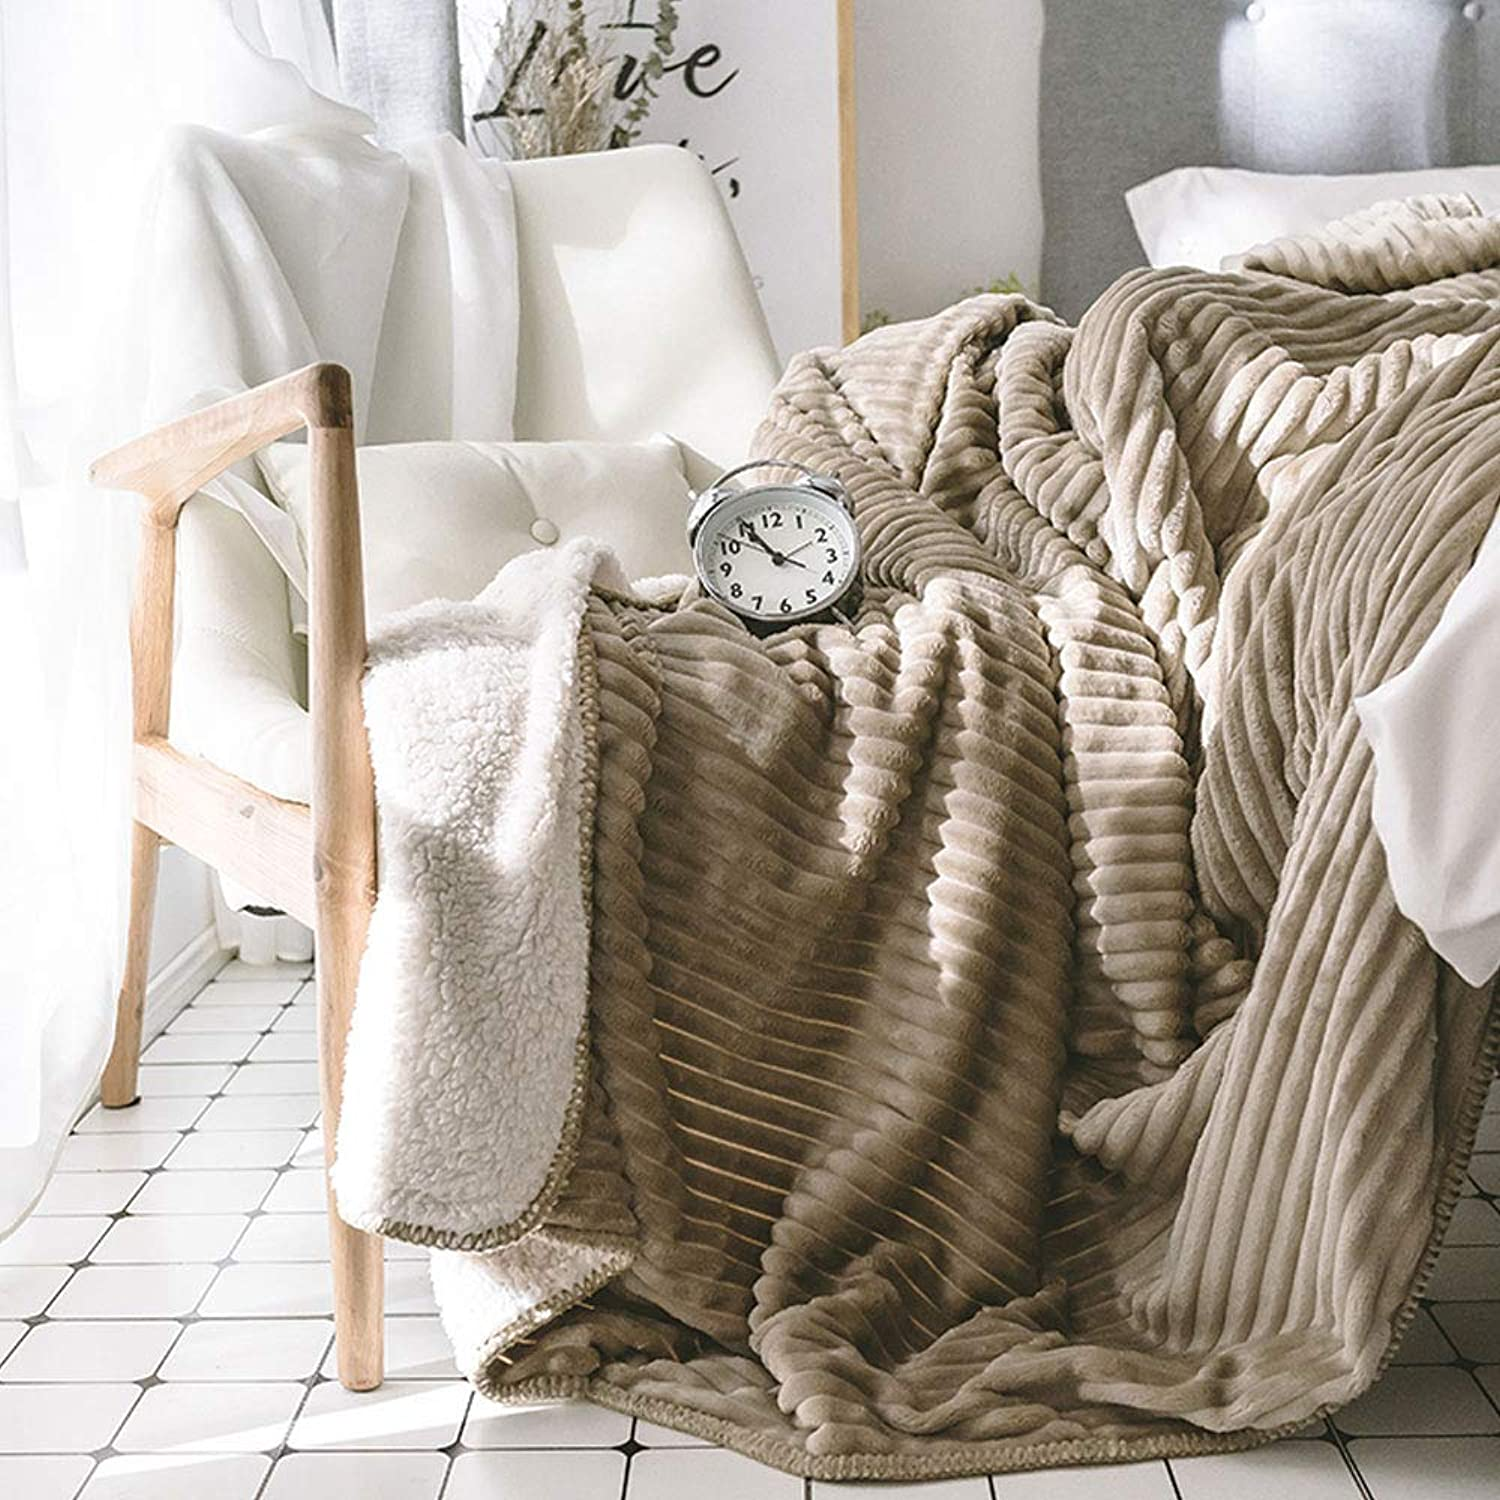 Thicken Solid color Striped Lamb blanket blanket Coral blanket Quilt Single Double Flannel Sheets blanket Winter (color   Coffee, Size   78.74  90.55)